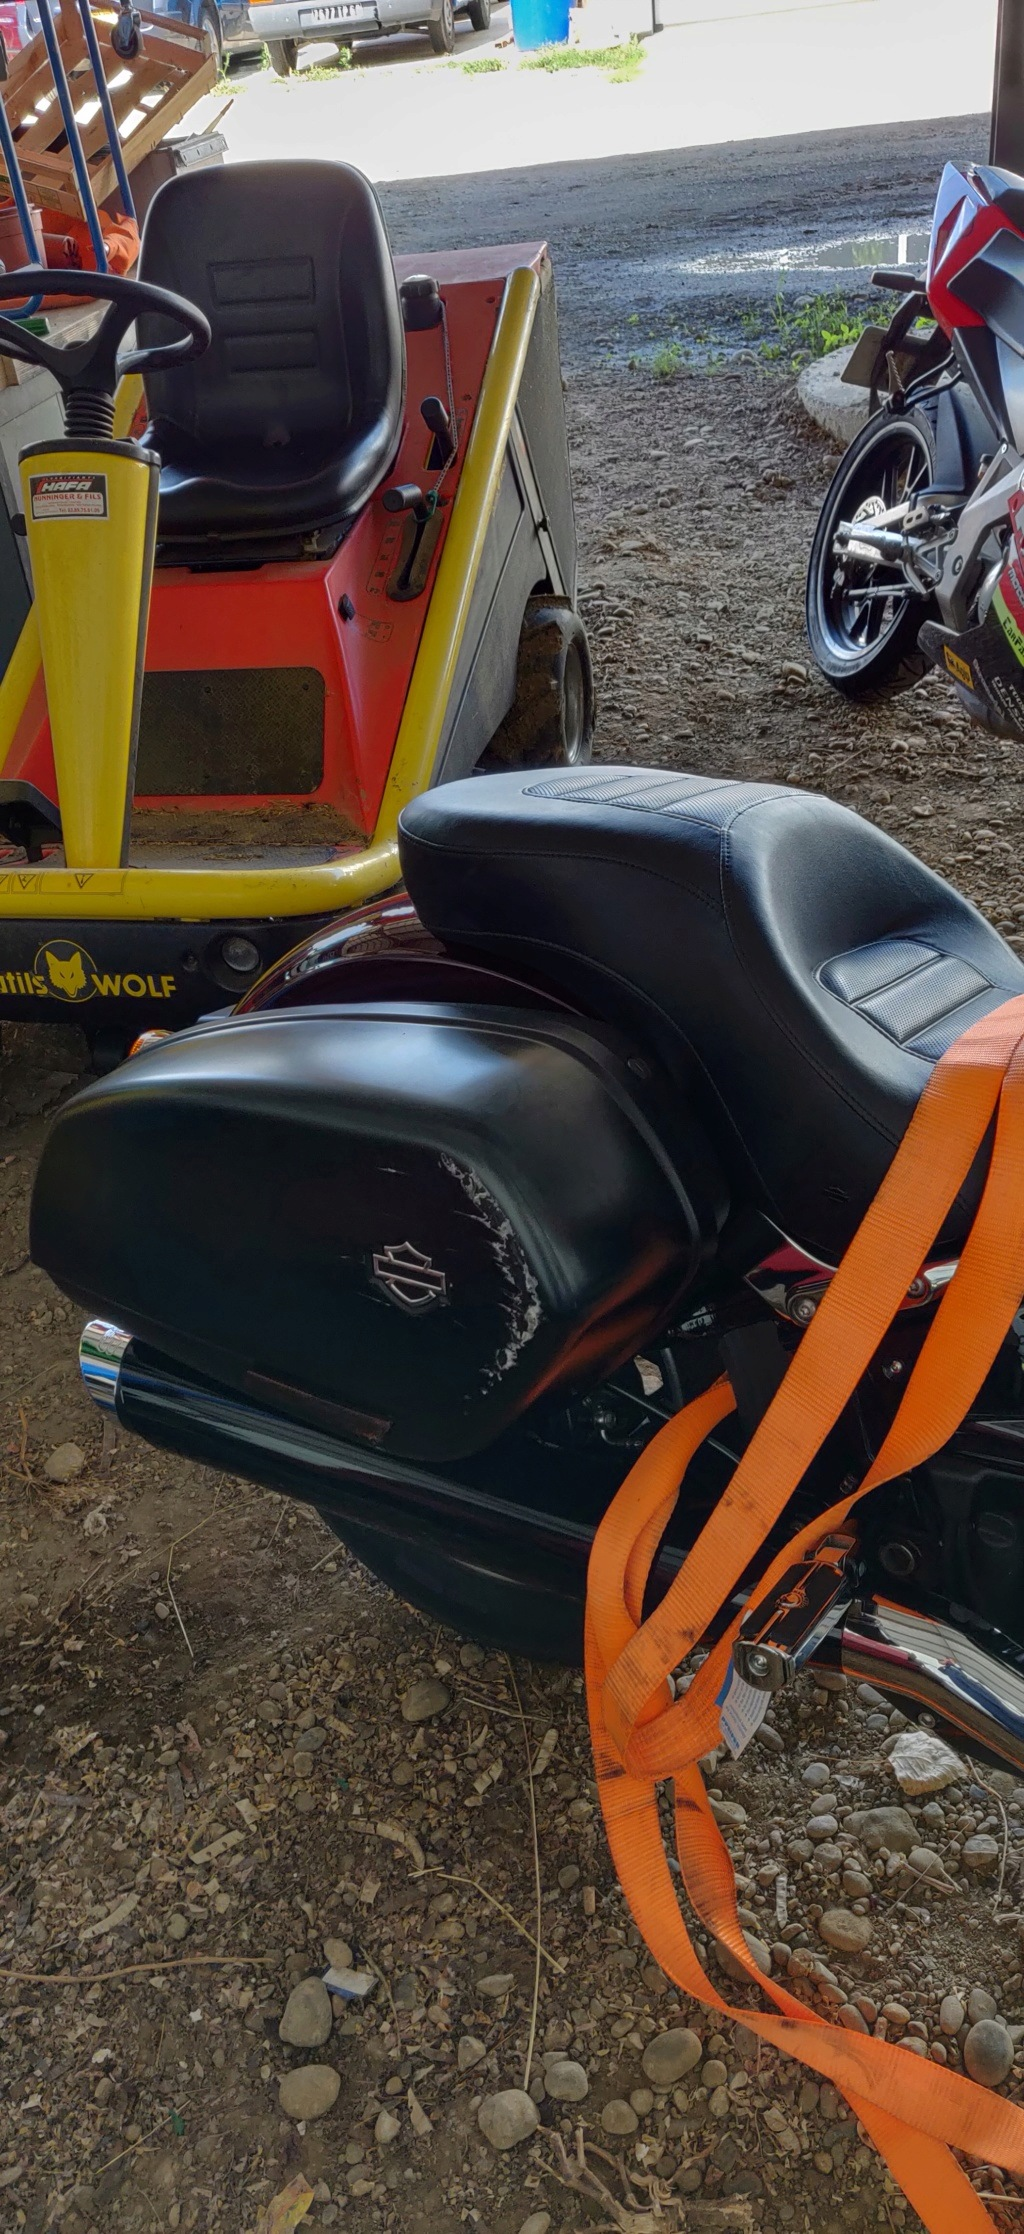 Accident Sport glide Img_2011